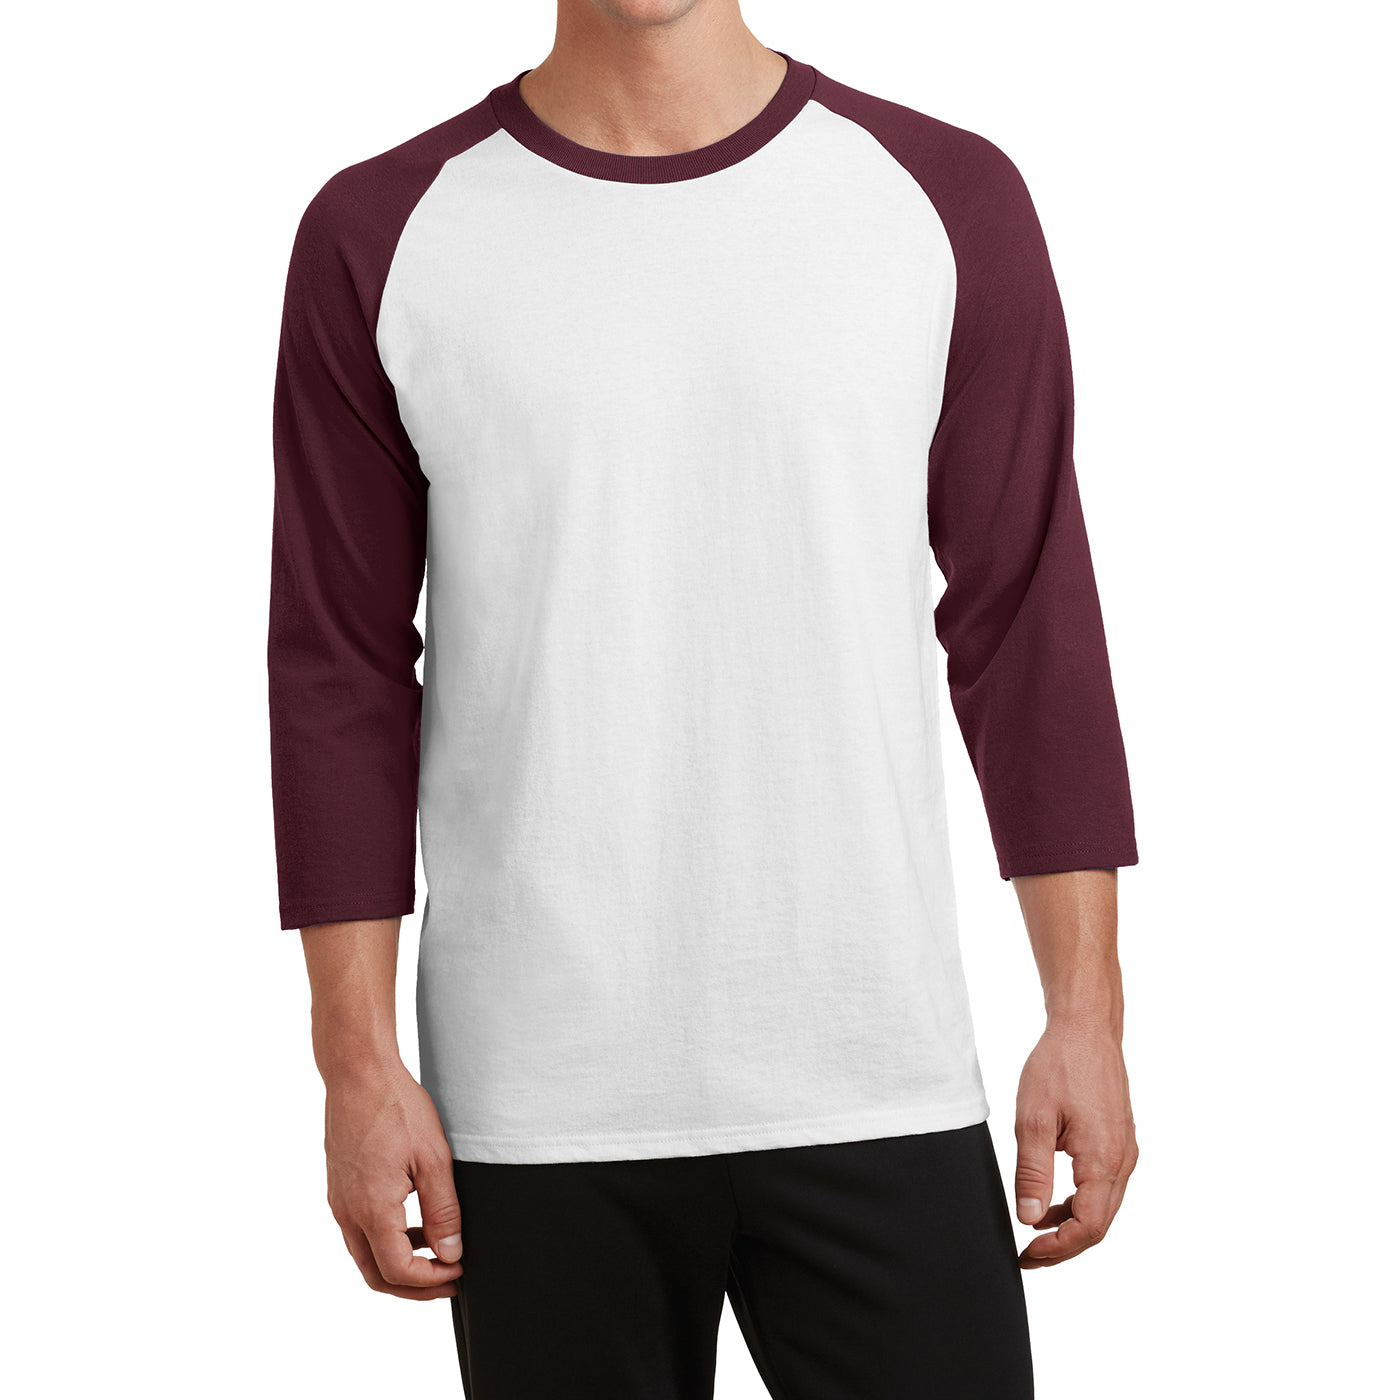 Men's Core Blend 3/4-Sleeve Raglan Tee - White/ Athletic Maroon - Front